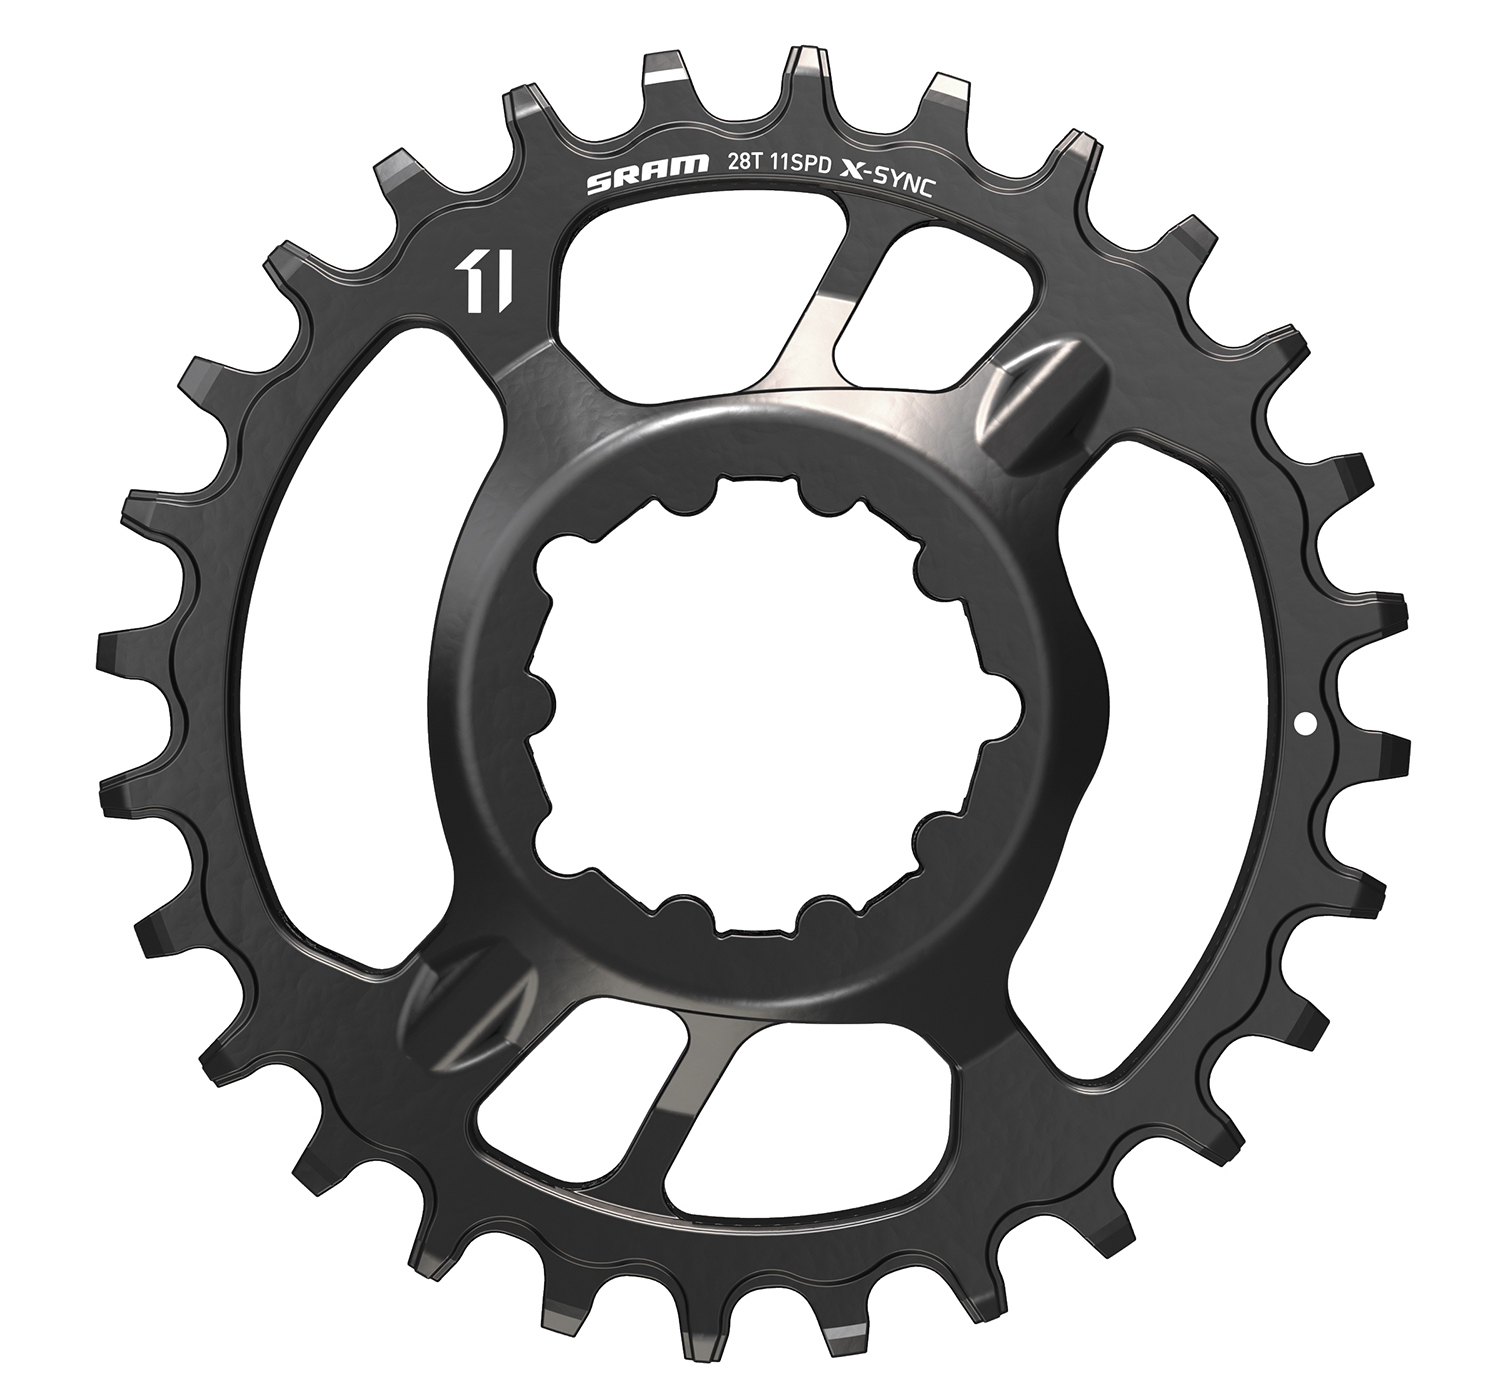 SRAM_MTB_Steel_Chainring_28t_Side_H